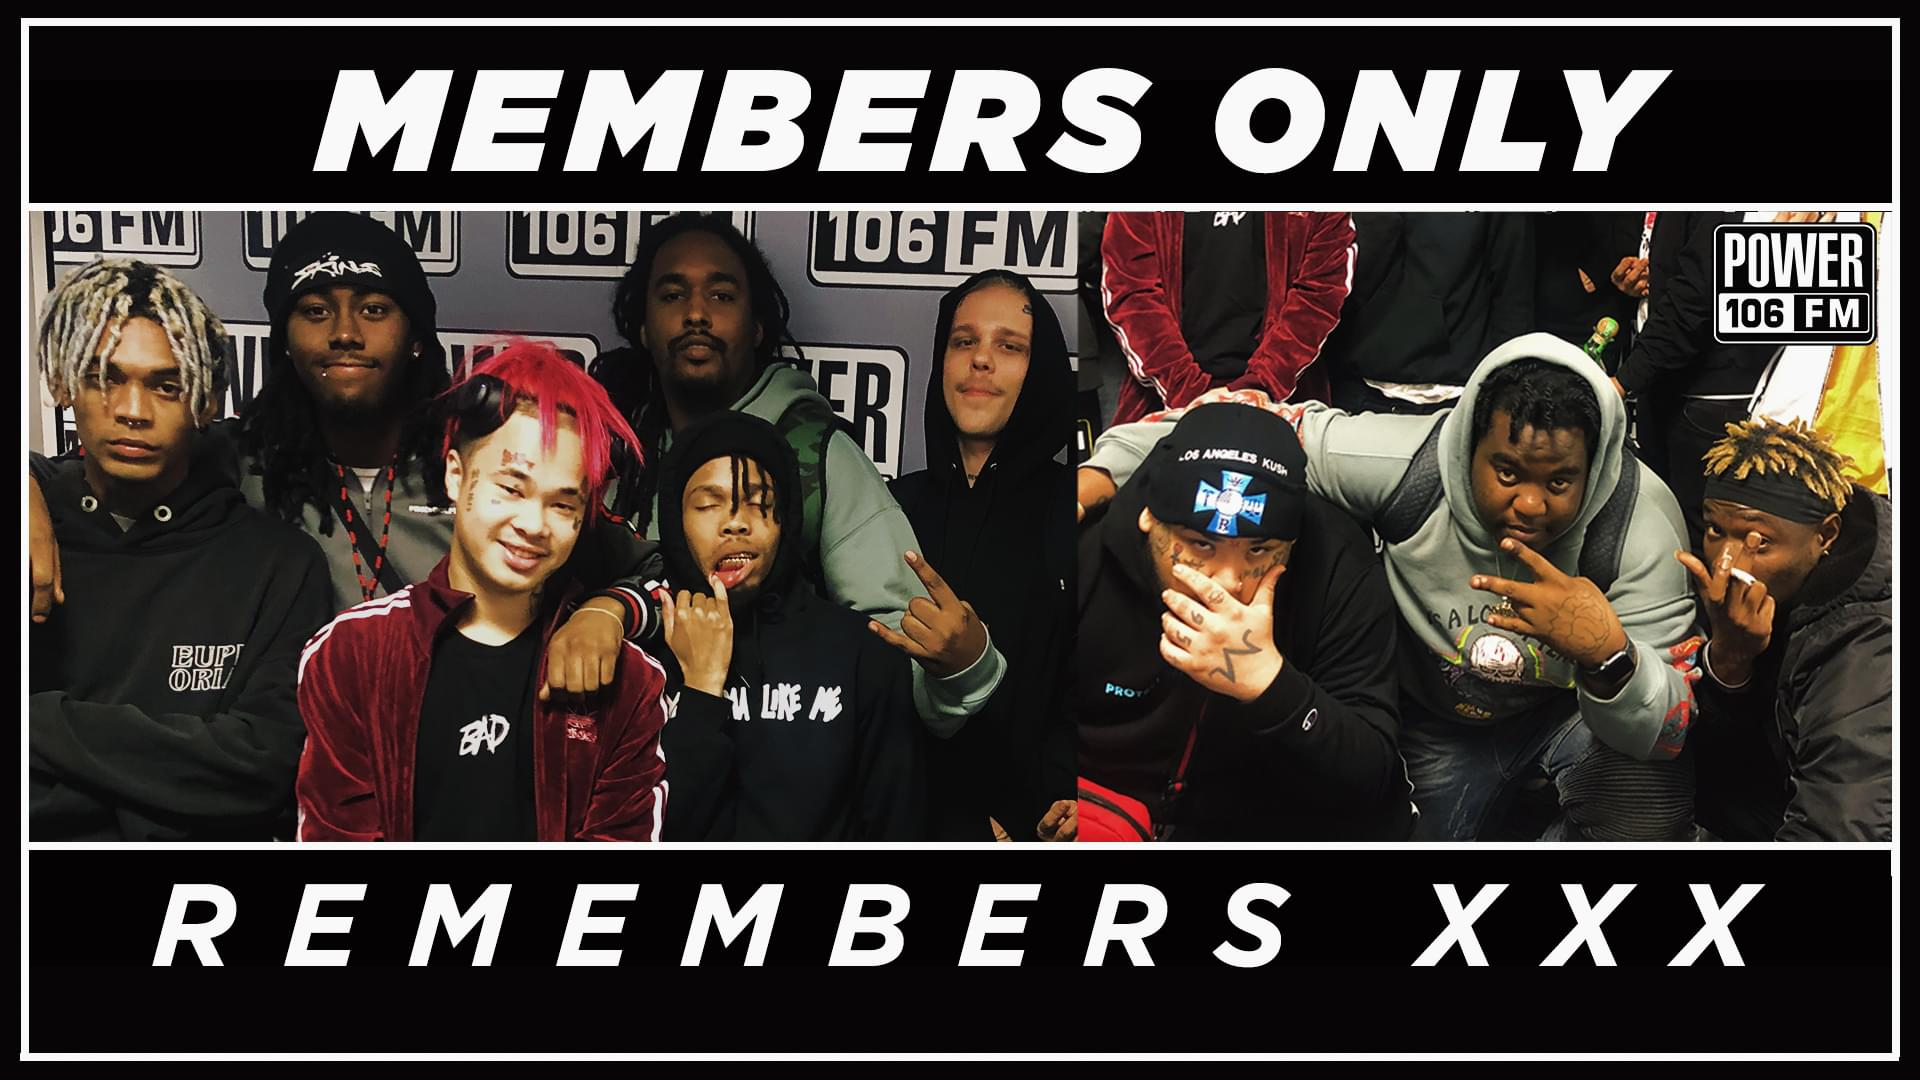 Members Only Share Favorite Memories with XXXTentacion + Best Part Of Making Vol. 4